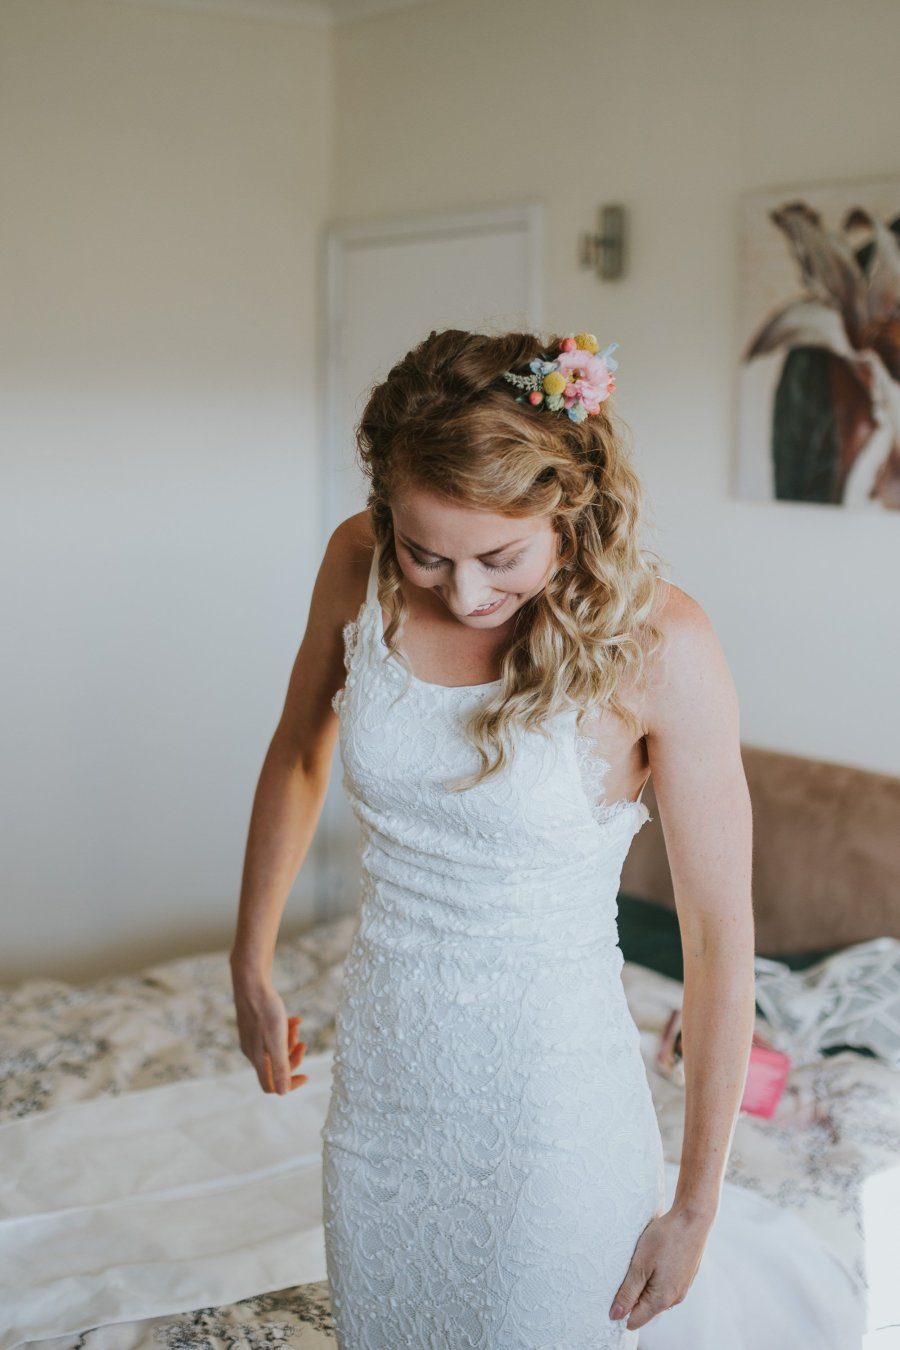 JAMAI | Zoe Theiadore | Perth Wedding Photographer | Ebony Blush Photography | International Wedding Photographer1442